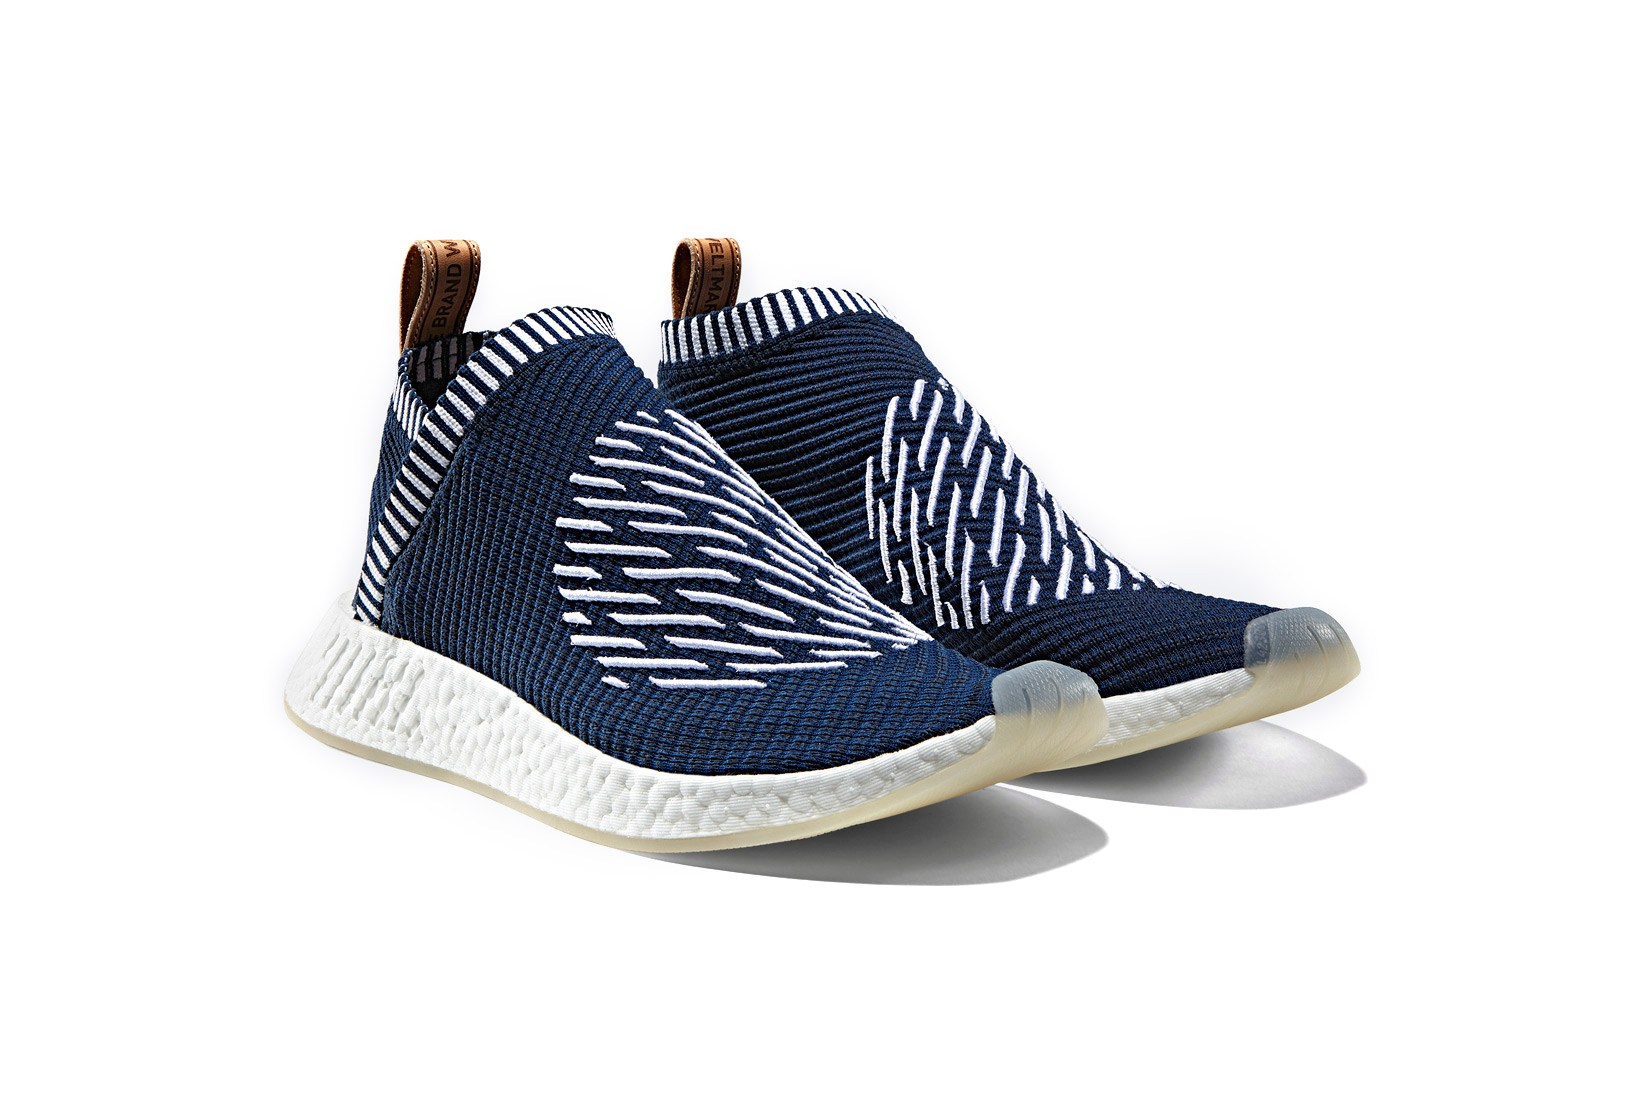 adidas-originals-nmd-cs2-ronin-pack-11